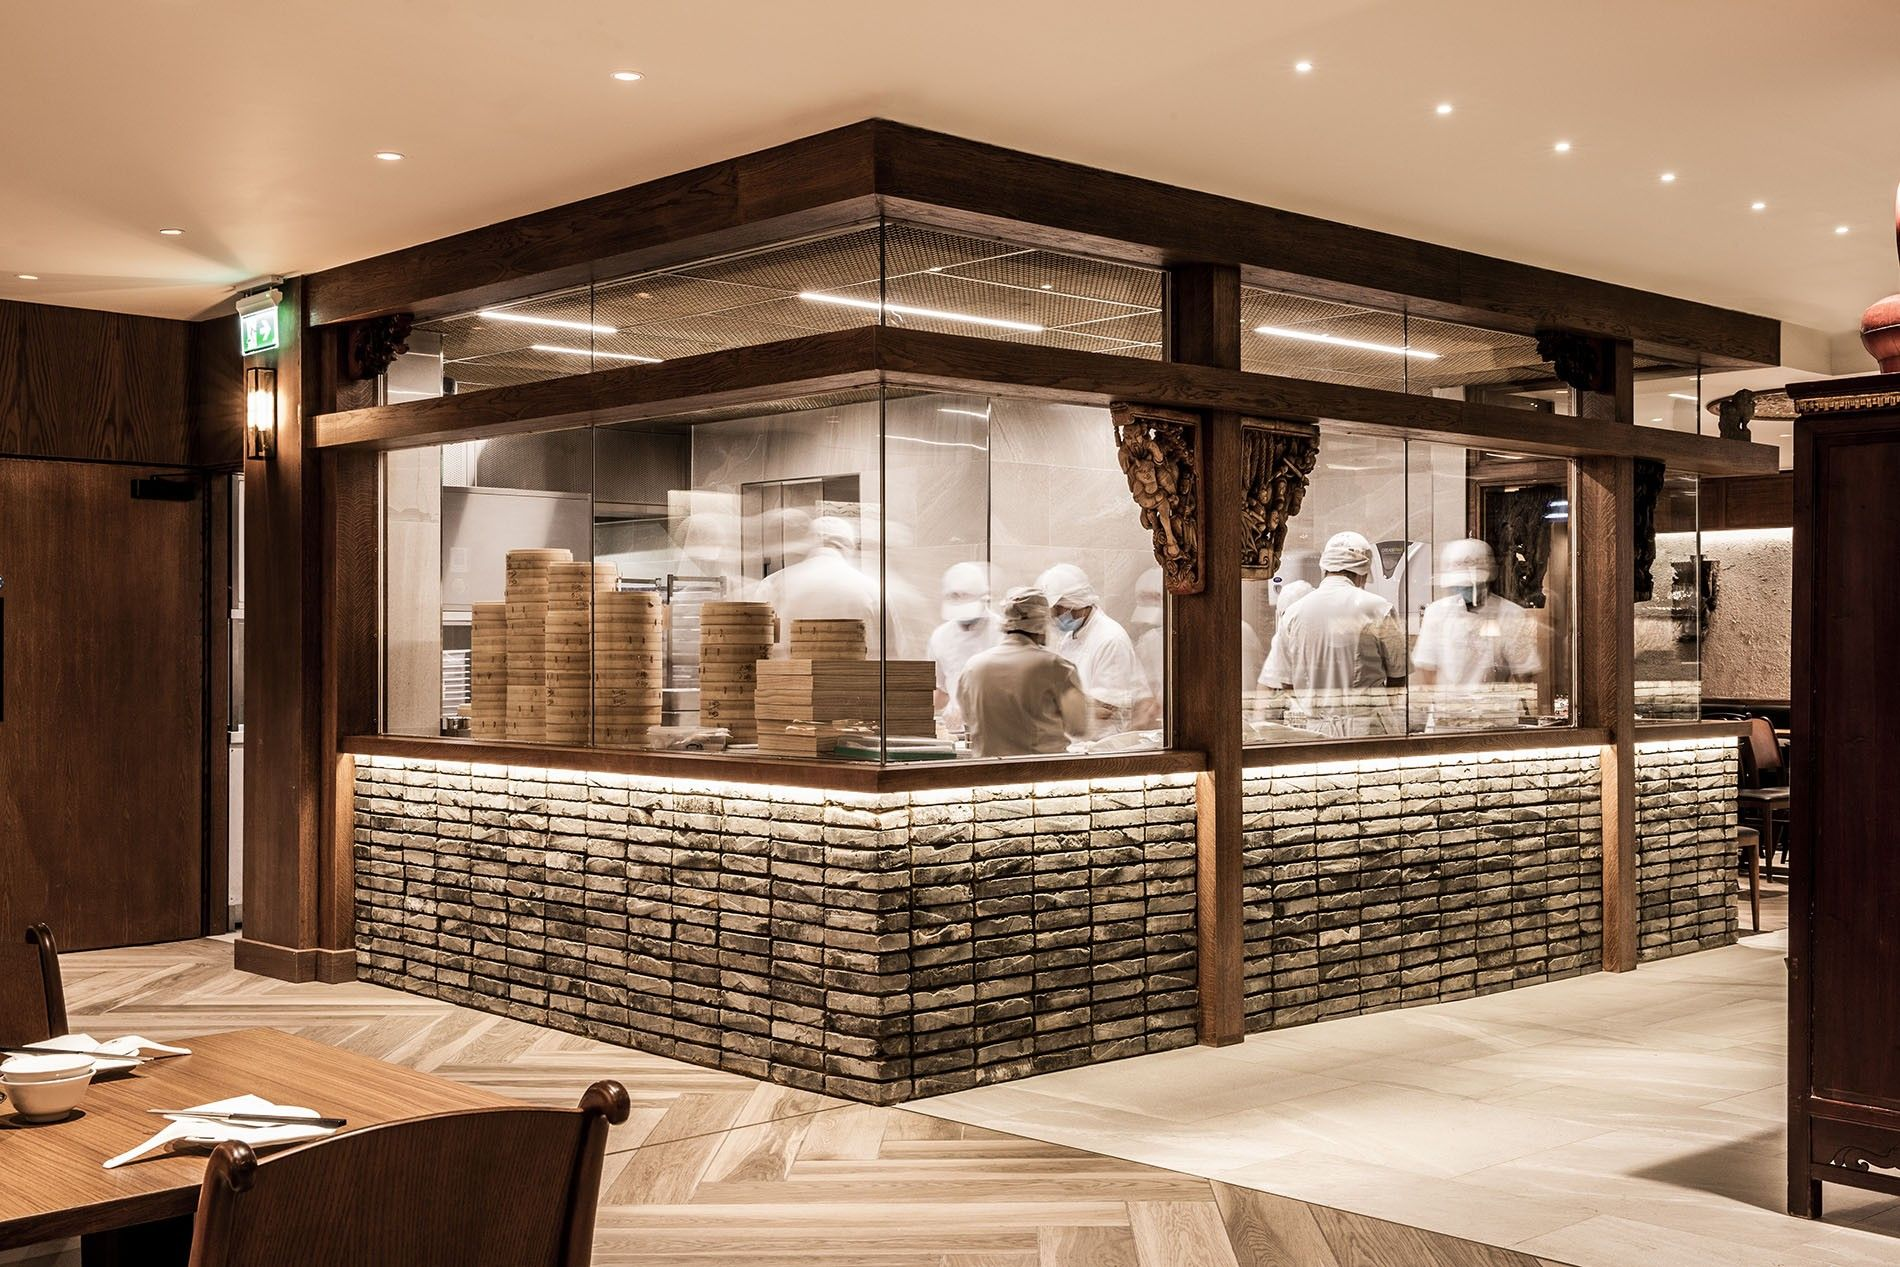 Tried & Tested: Din Tai Fung, London | National Geographic